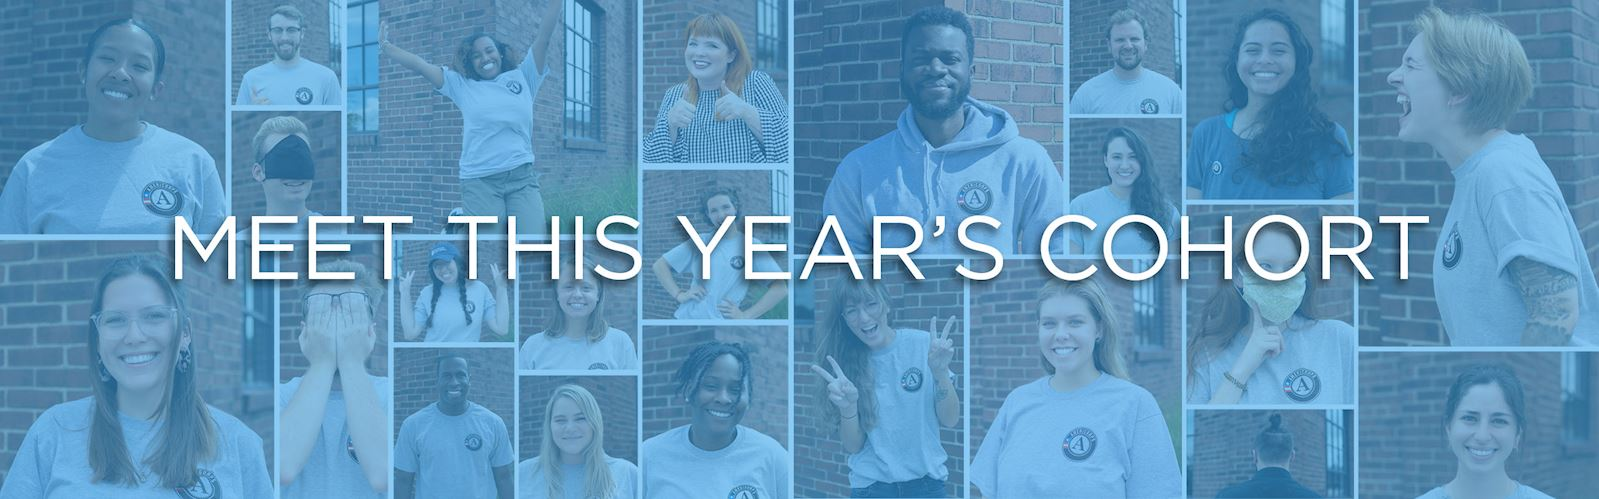 Meet this year's cohort